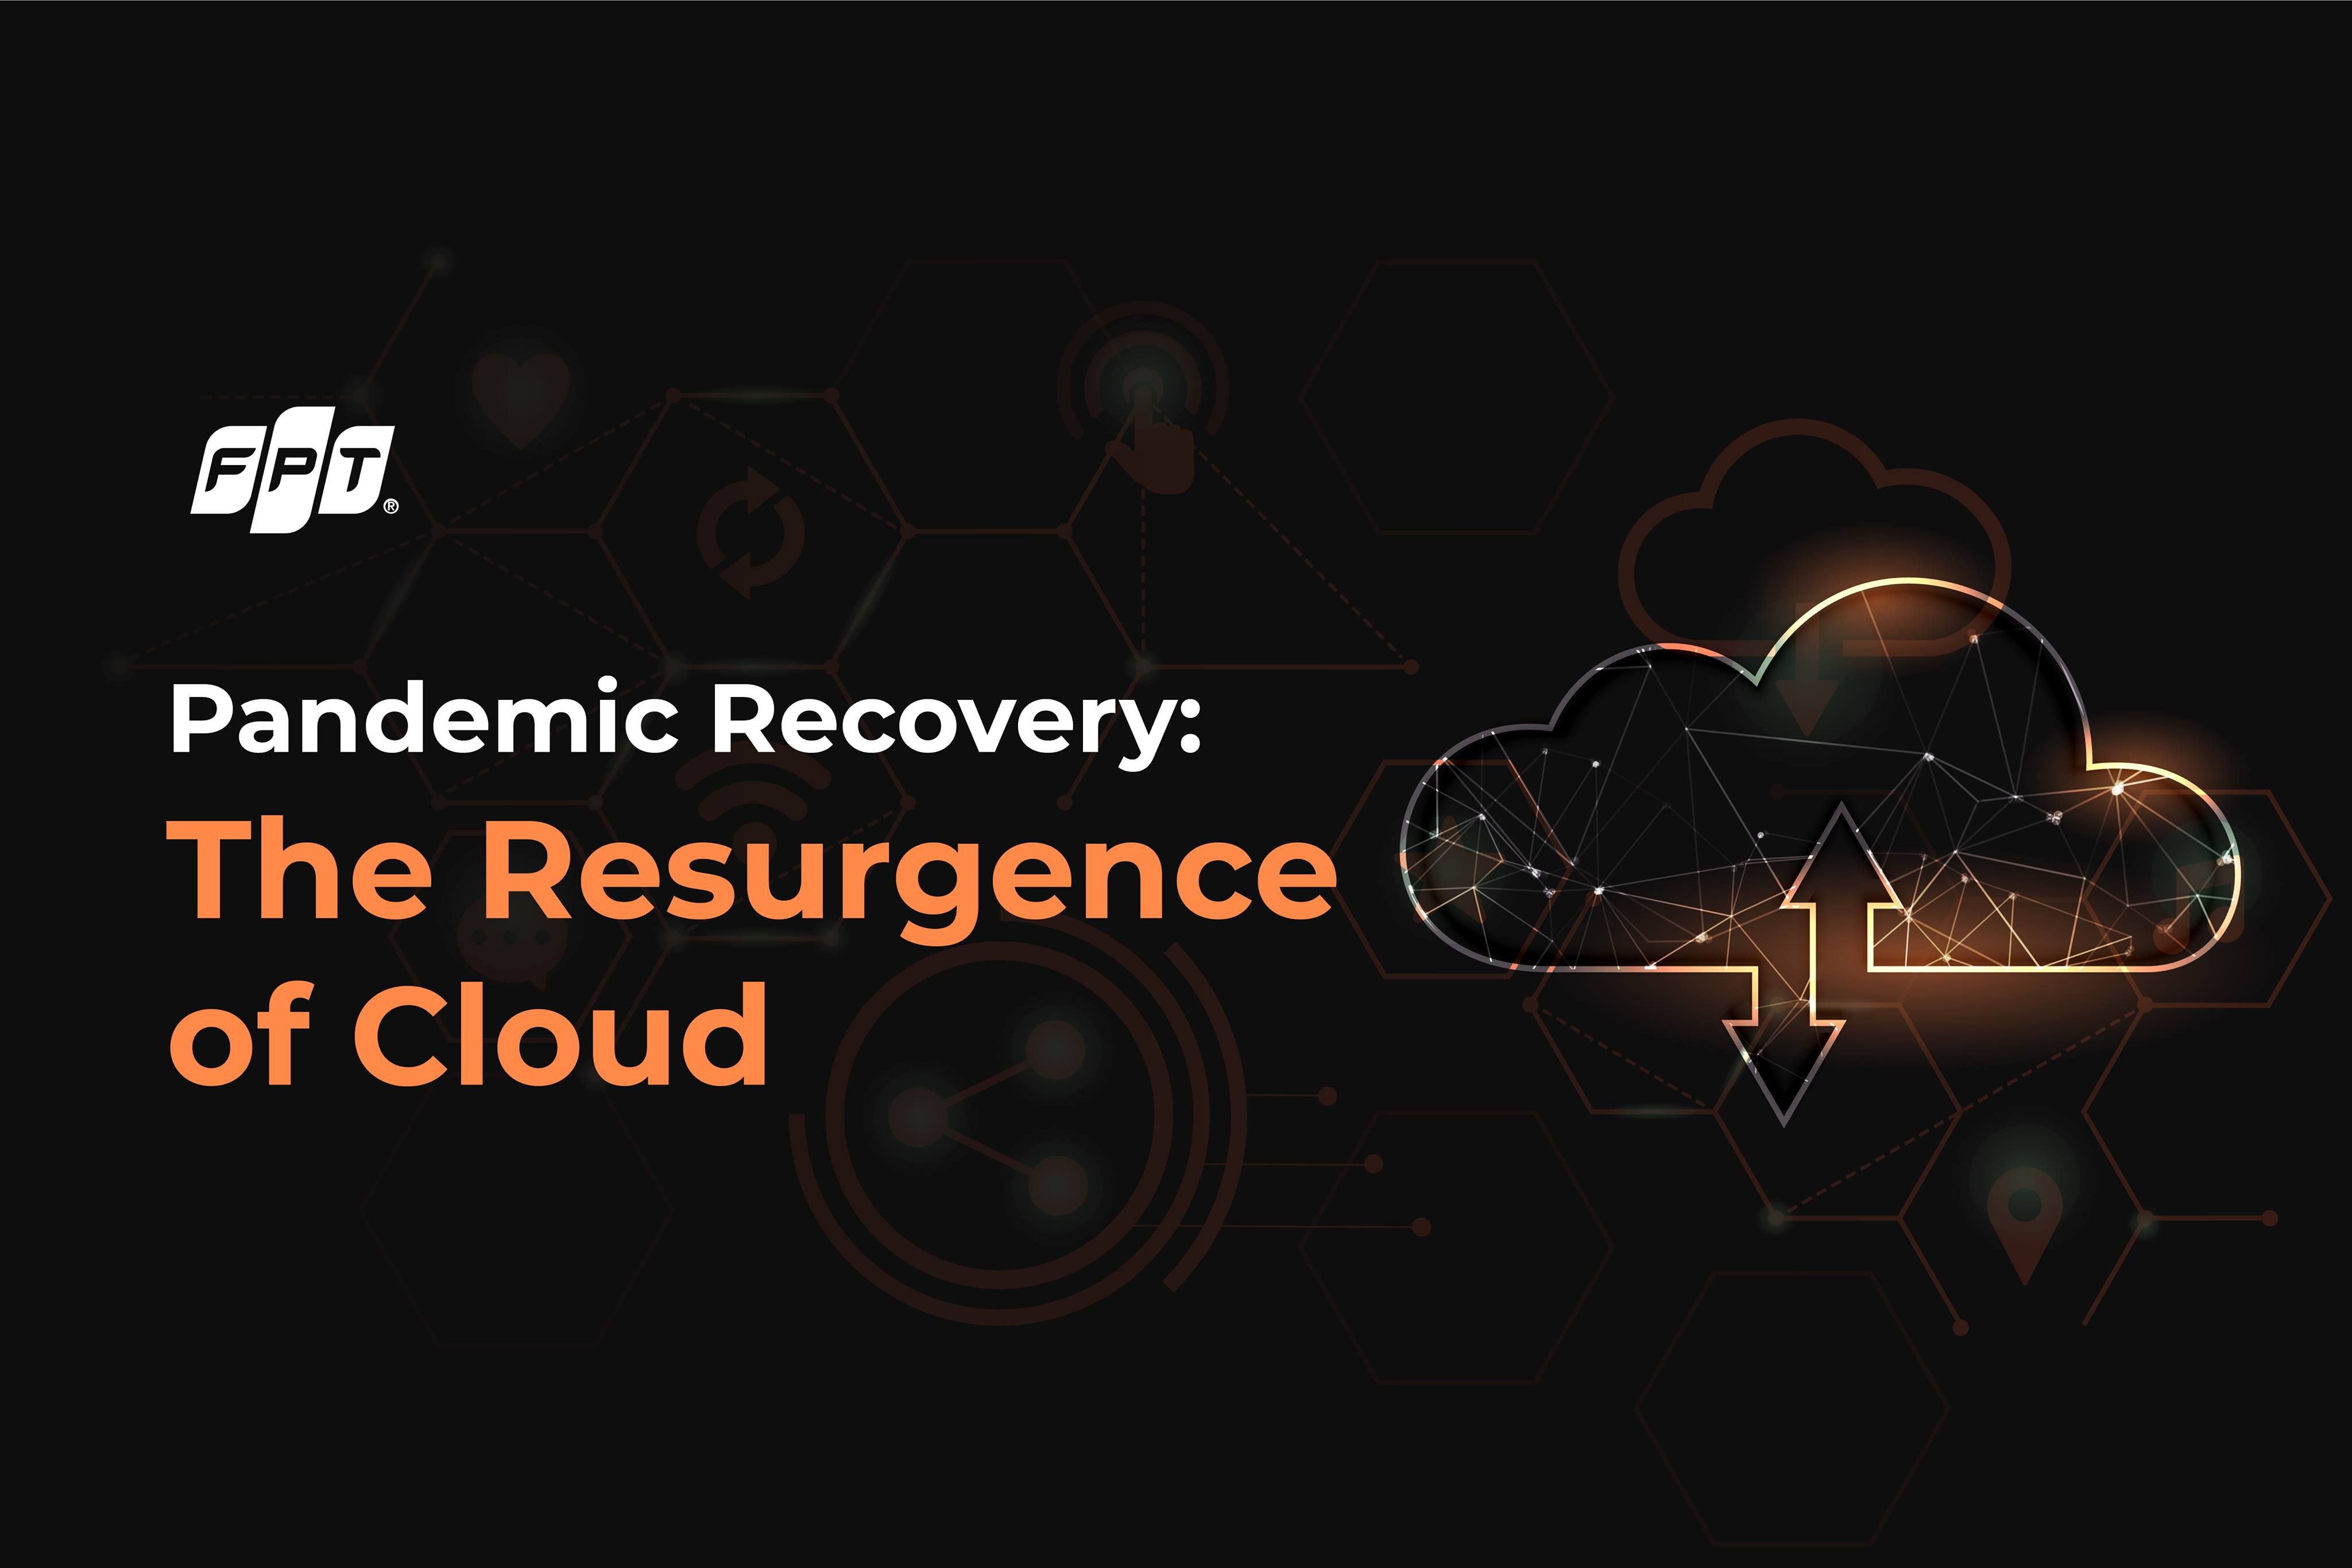 Pandemic Recovery: The Resurgence of Cloud